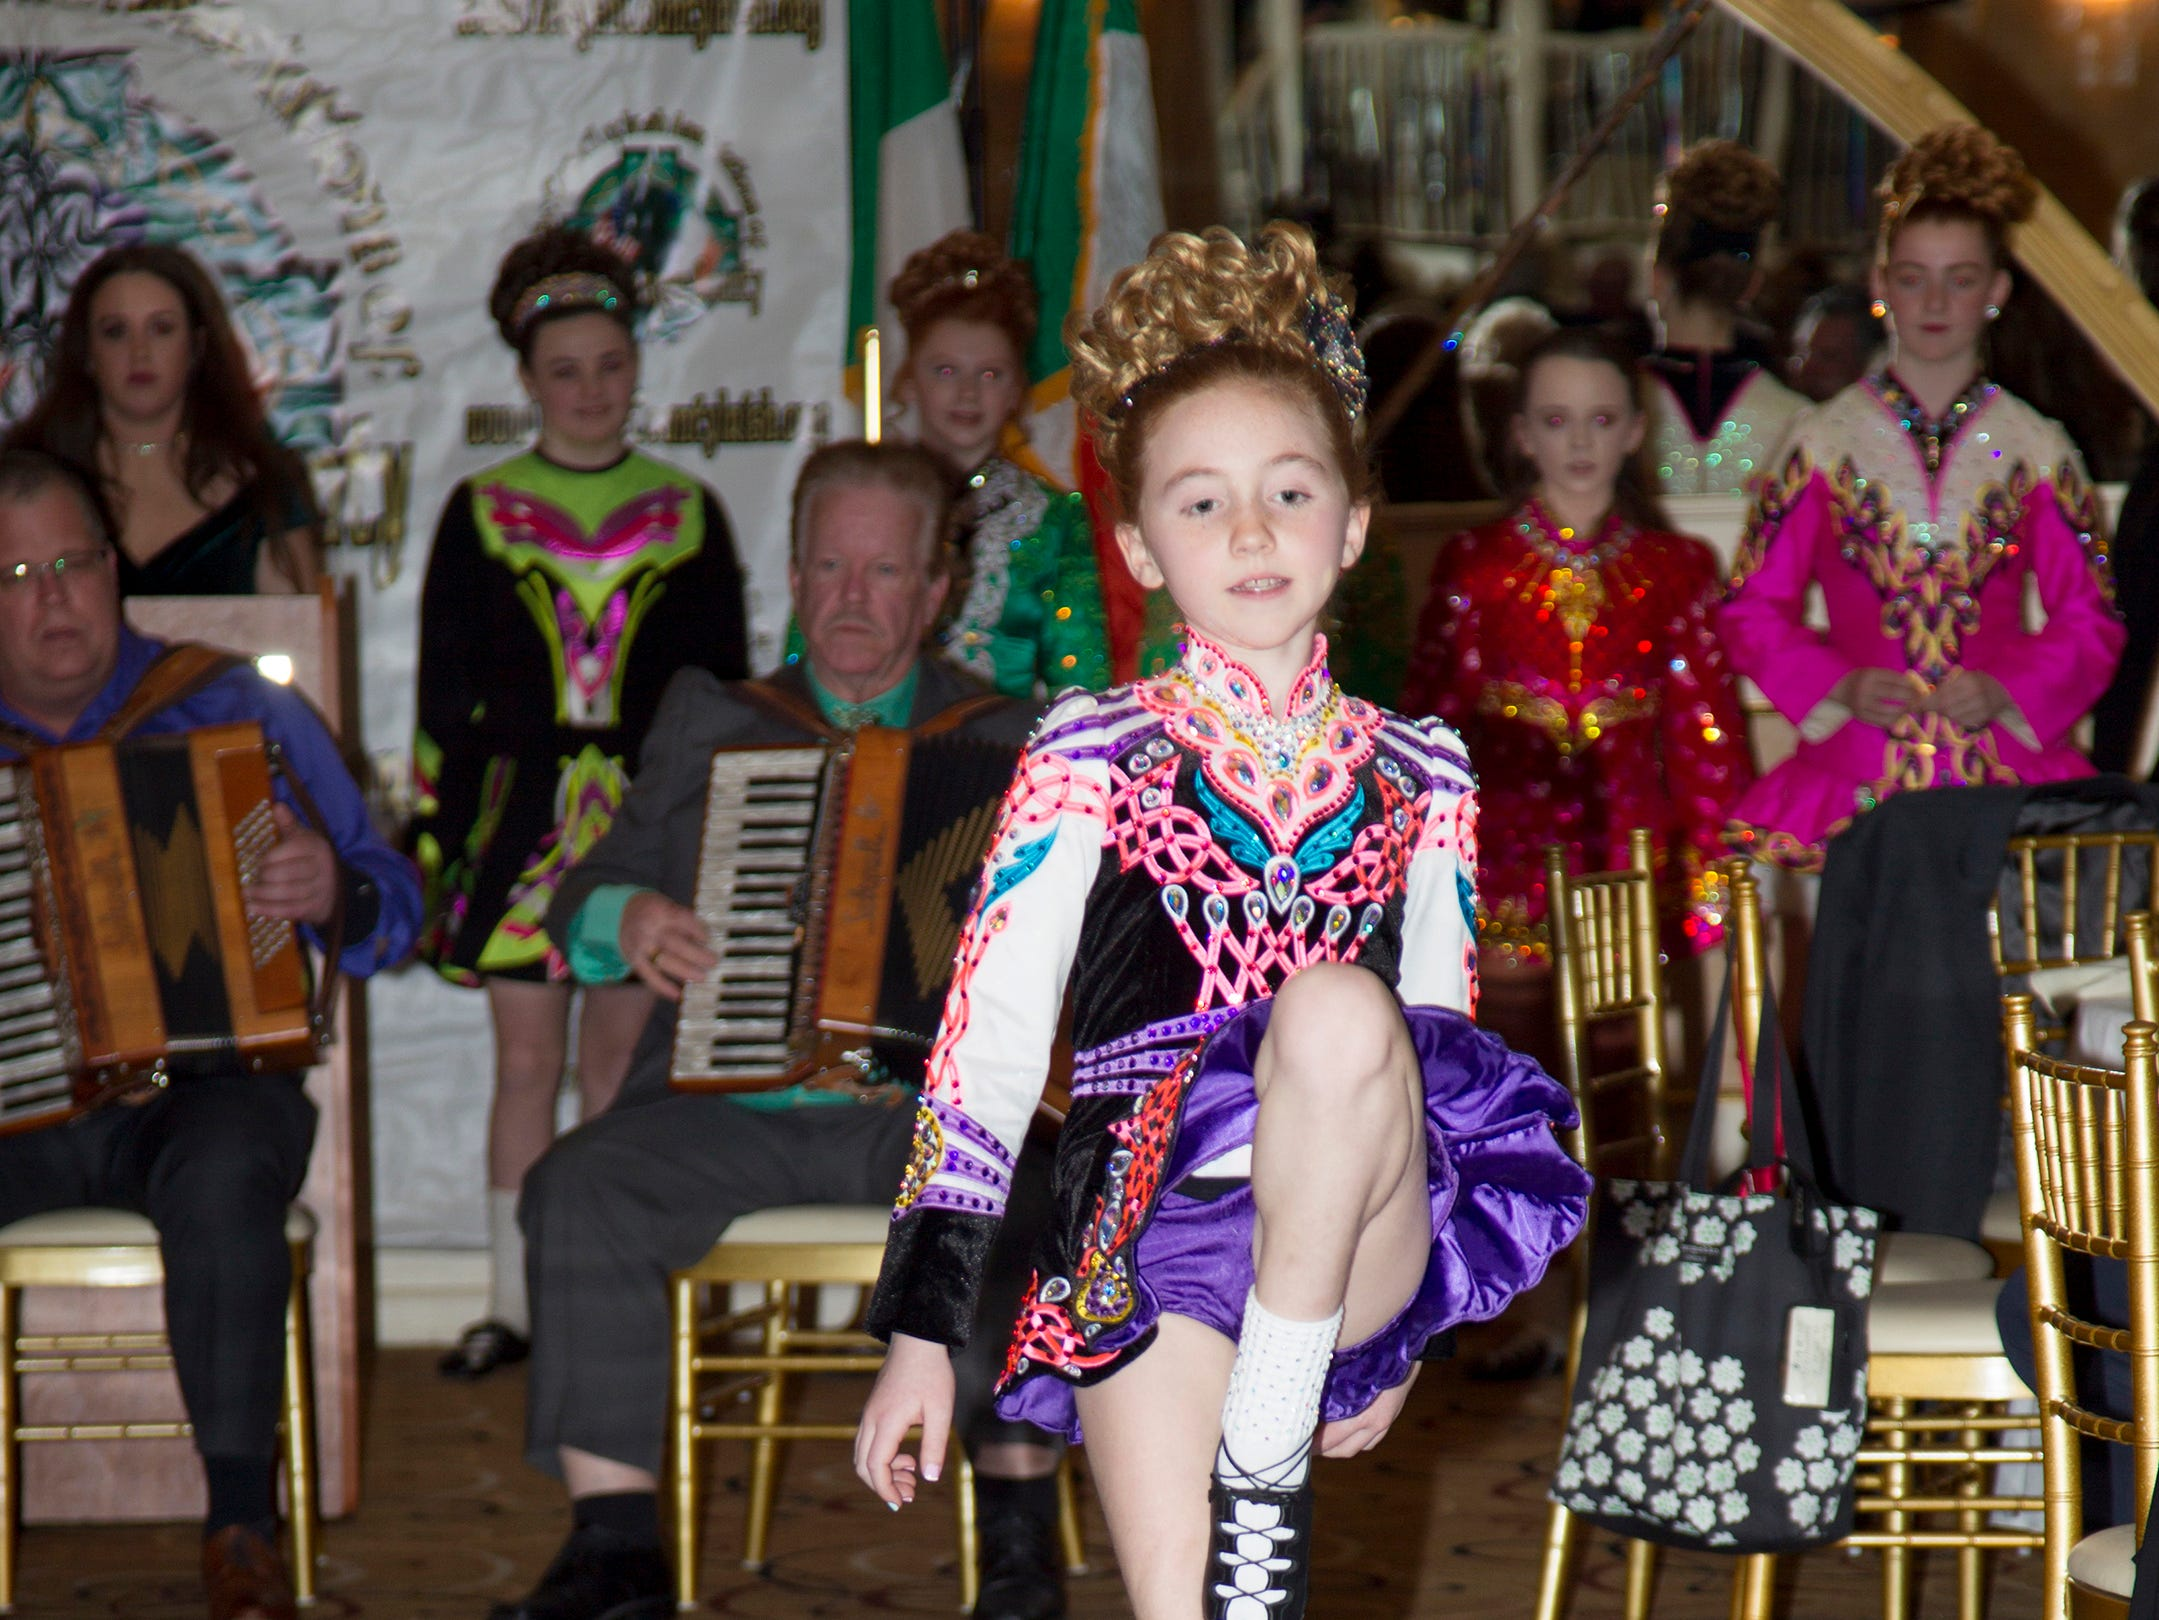 38th Annual St. Patrick's Day parade Installation Dance at The Graycliff in Moonachie. 2/23/2019